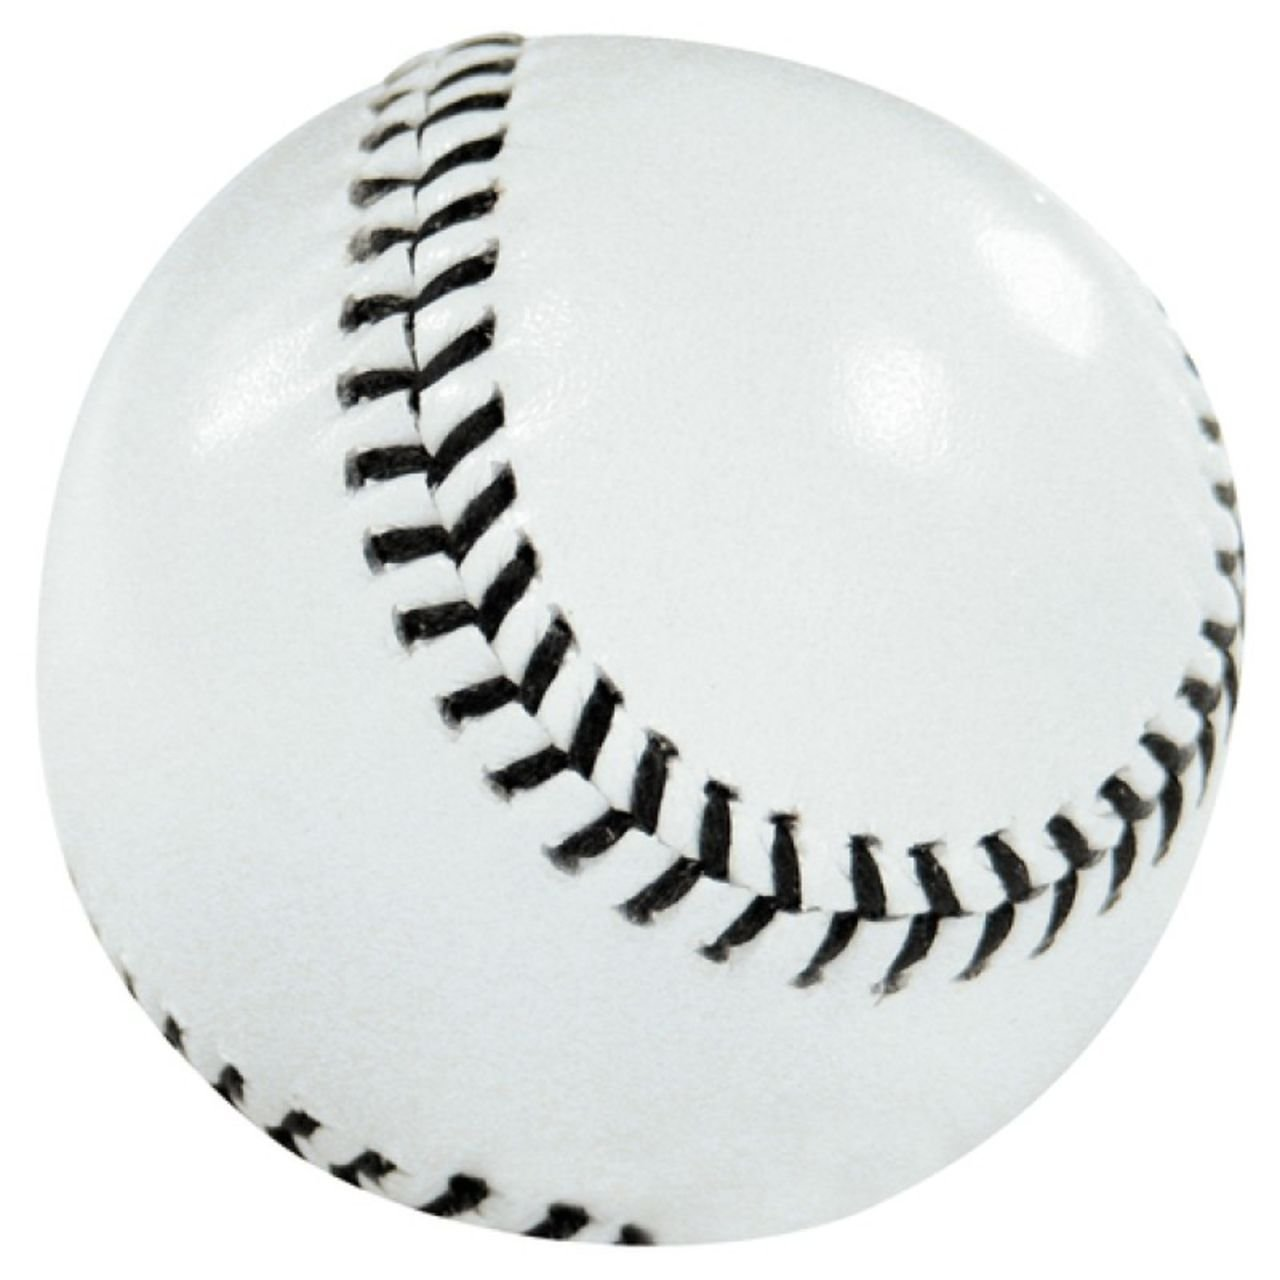 Carta Sport Rounder Ball Outdoor Spielen Training & Praxis Leder Baseball